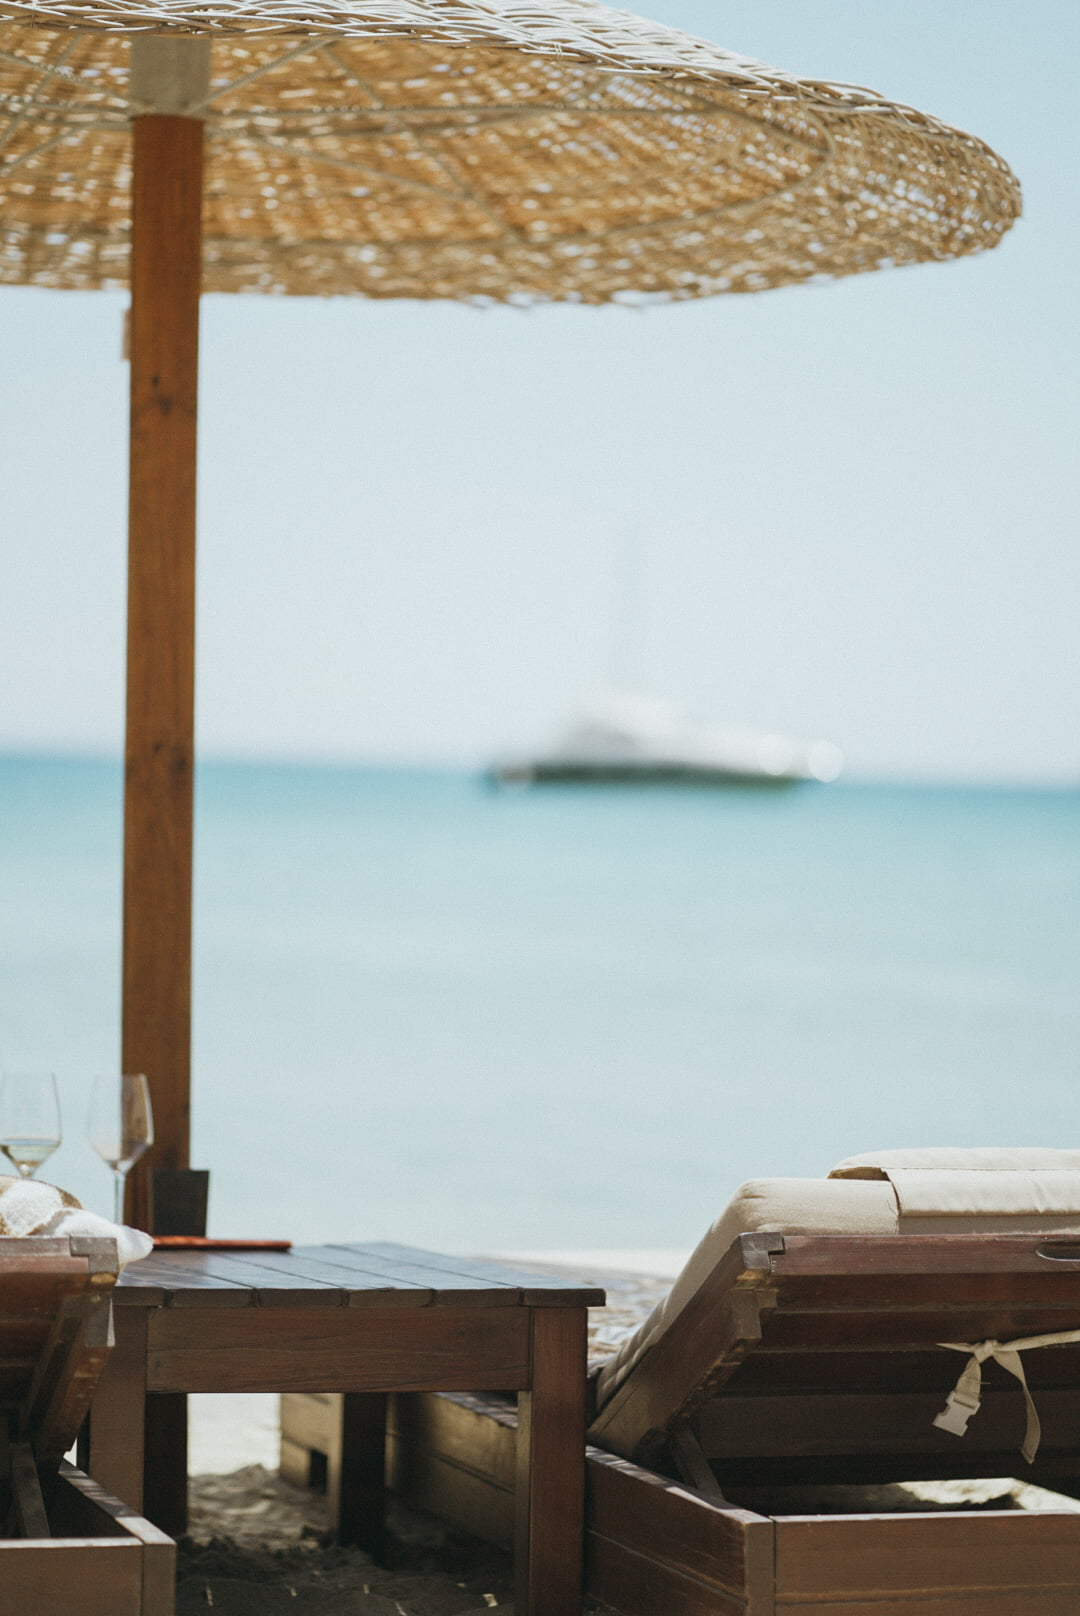 yacht views from the beach clubs in mykonos